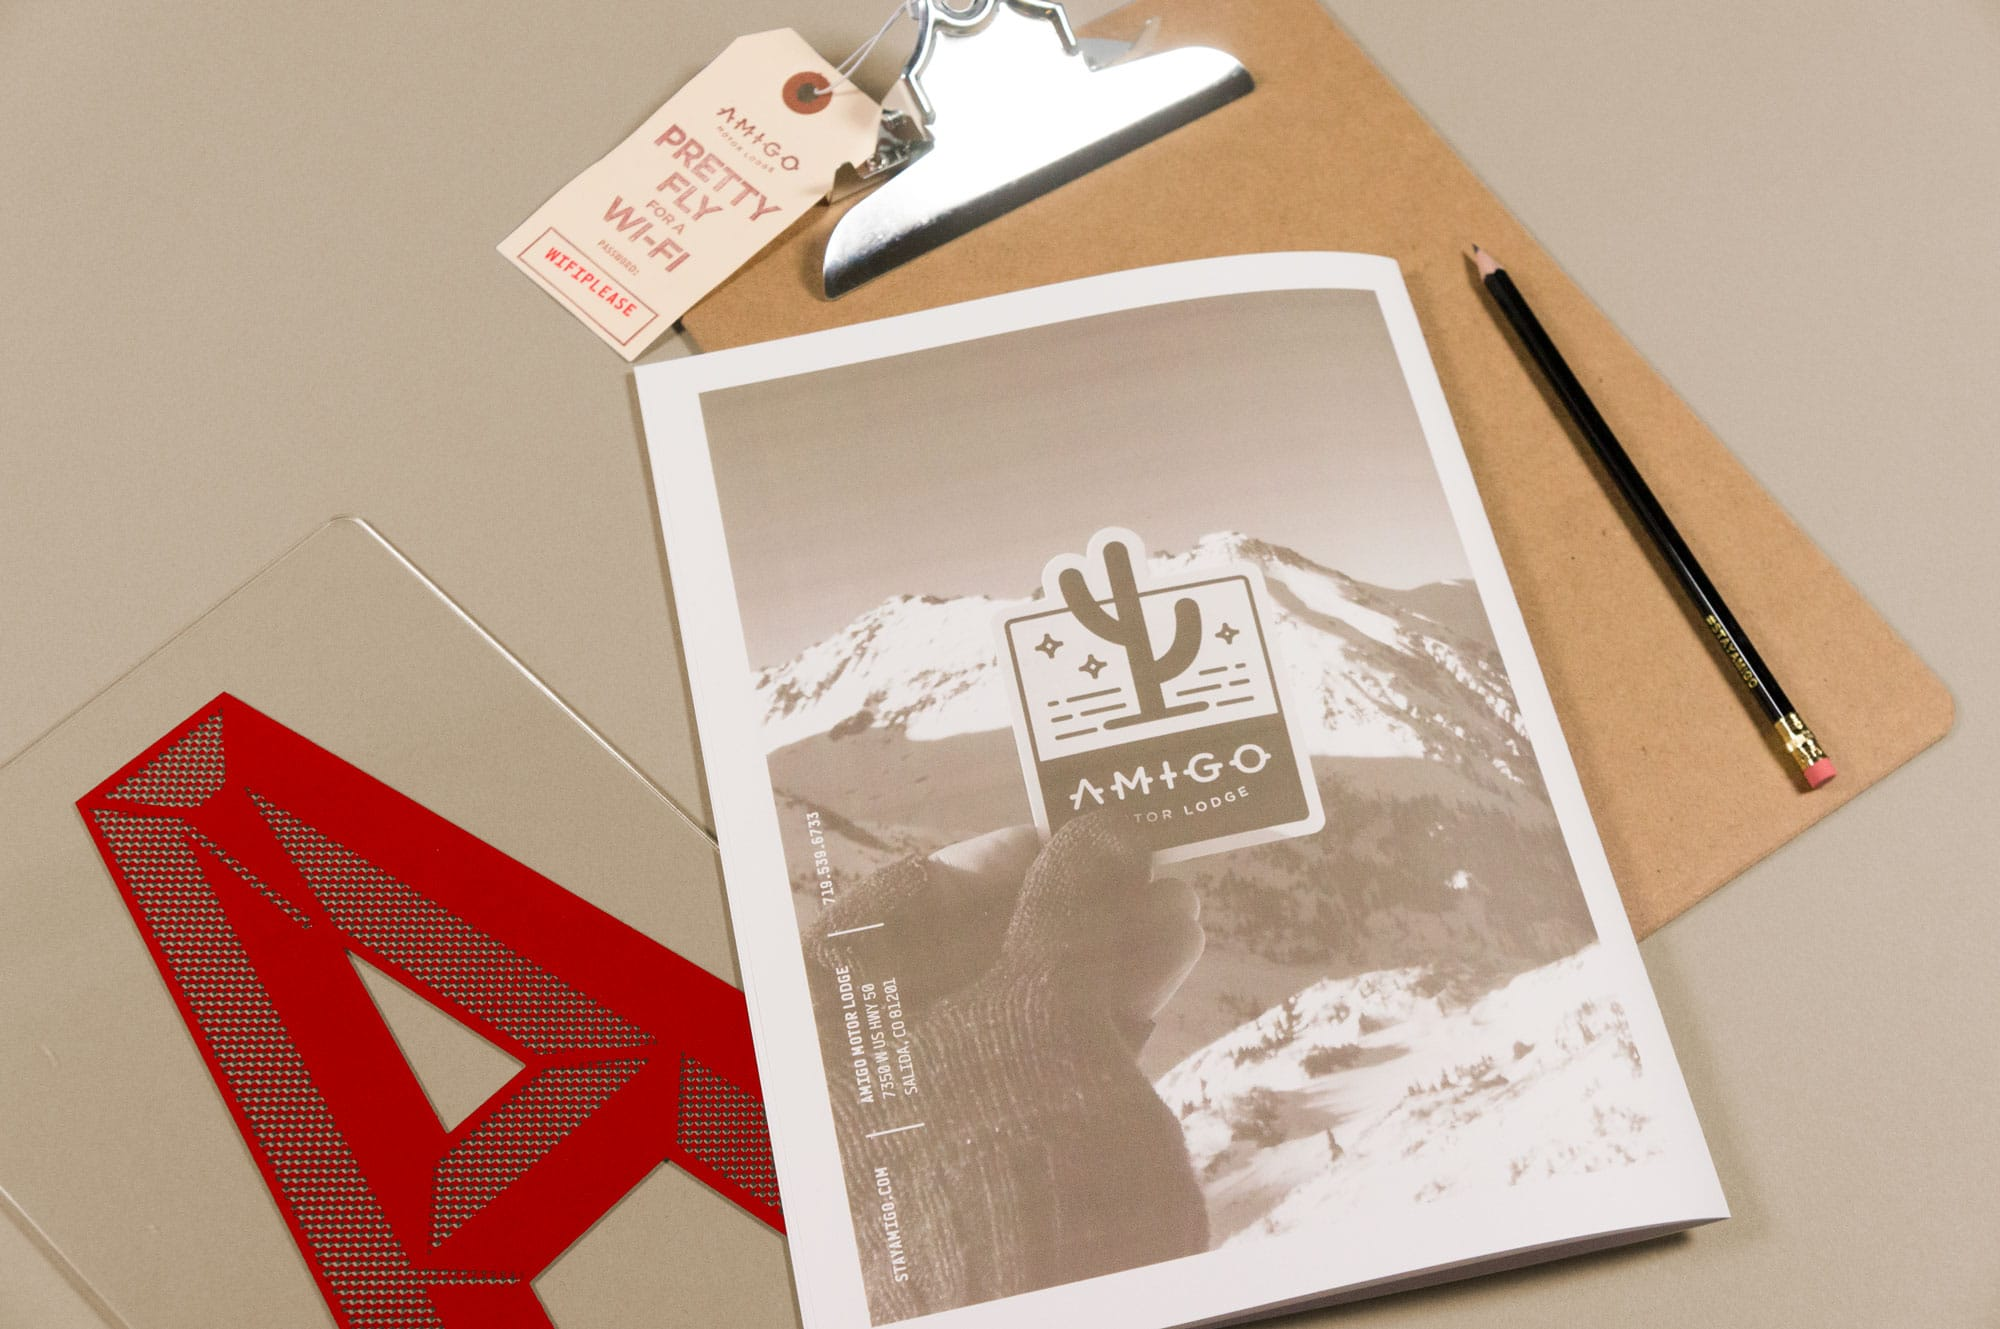 Amigo motor lodge caliber creative branding digital for Amigo motor lodge salida colorado